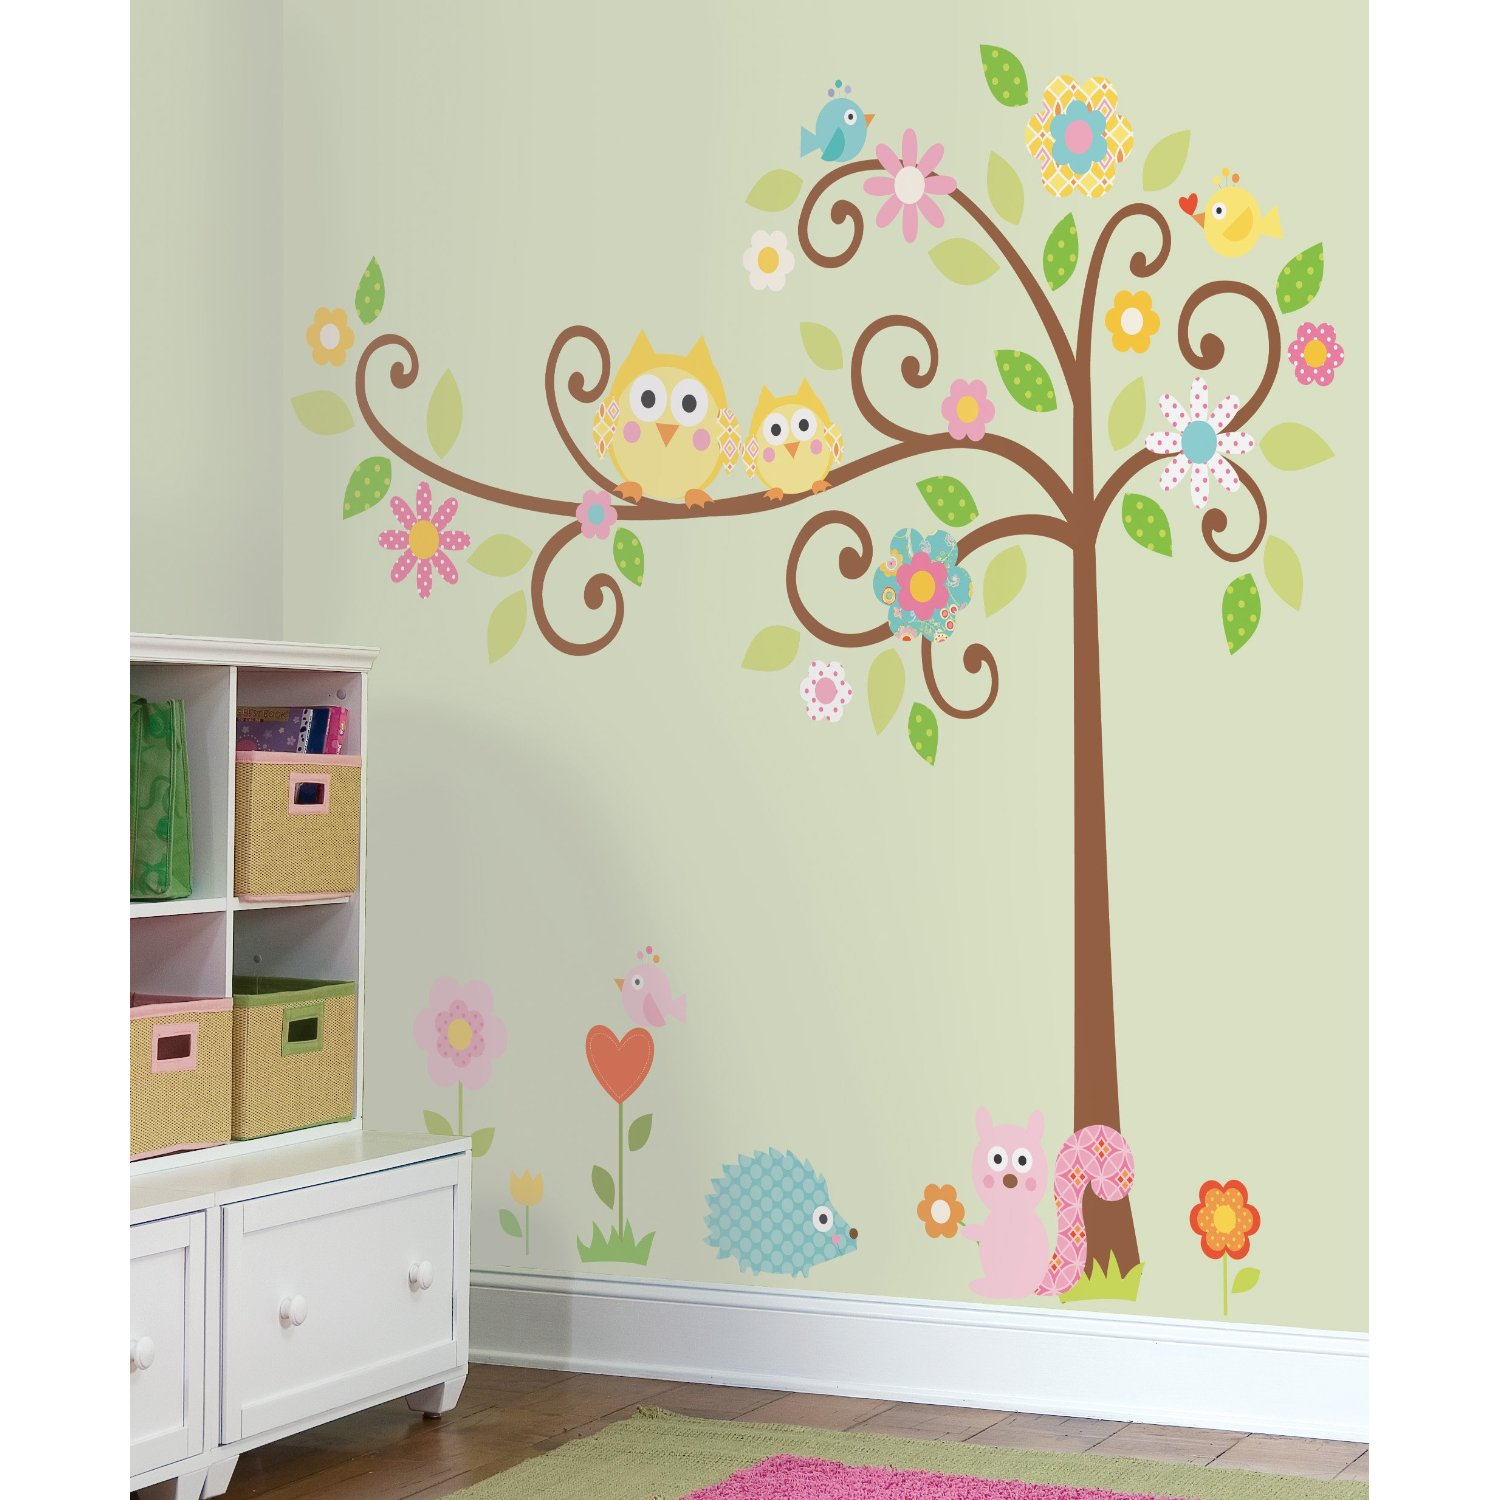 wall decal family art bedroom decor family tree wall decaljpg pinterest thrifty decorating